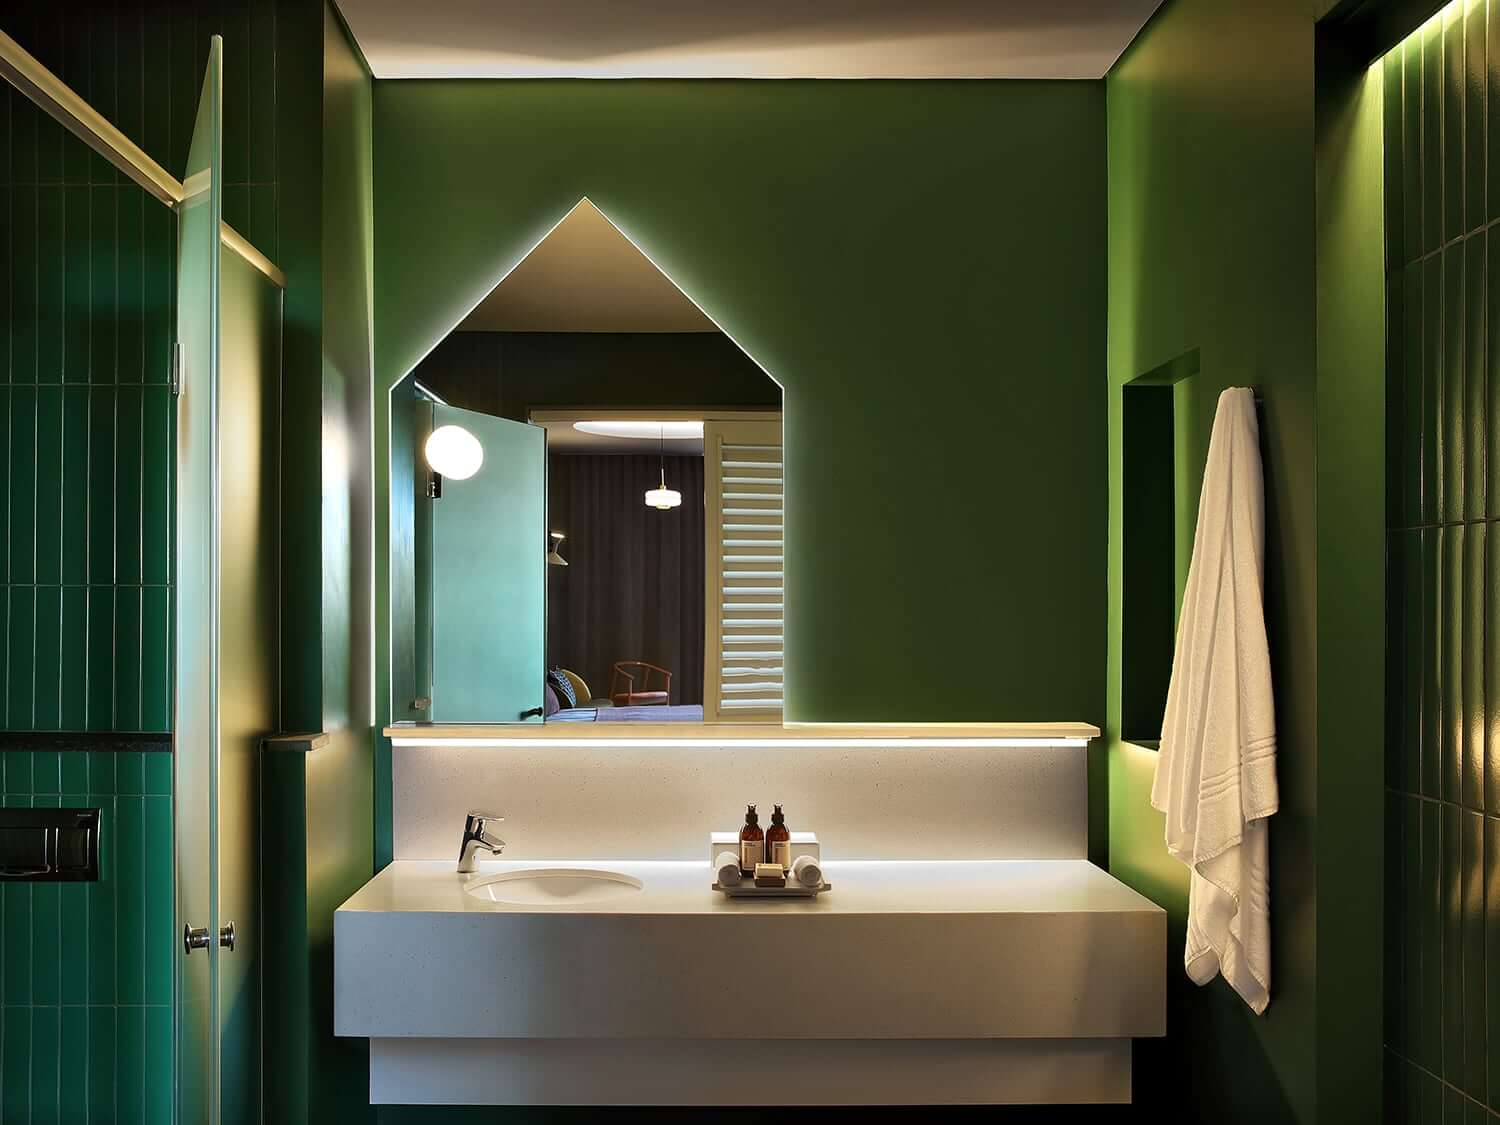 Bathroom is Home Suite Hotels, Johannesburg. Photo by Elsa Young Photography.